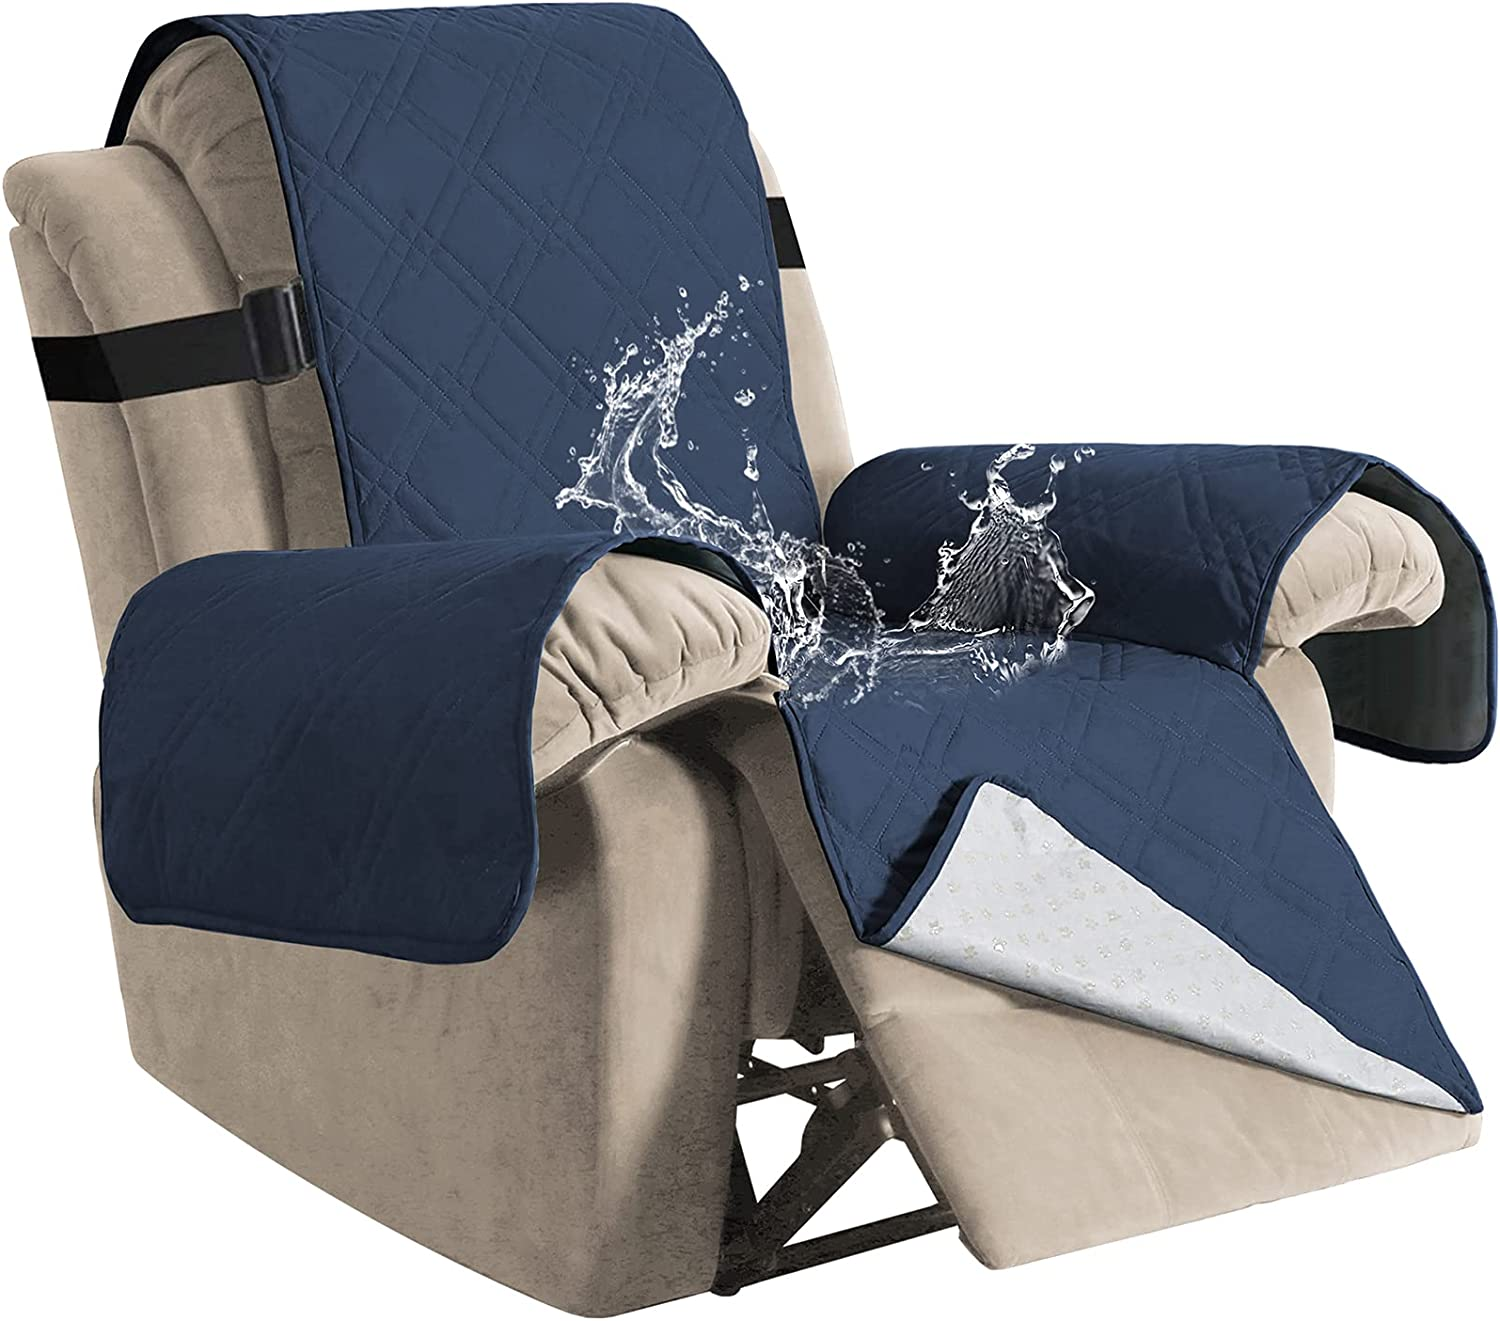 OFFer H.VERSAILTEX 100% Waterproof Quilted Cover Reclin Recliner Challenge the lowest price Chair